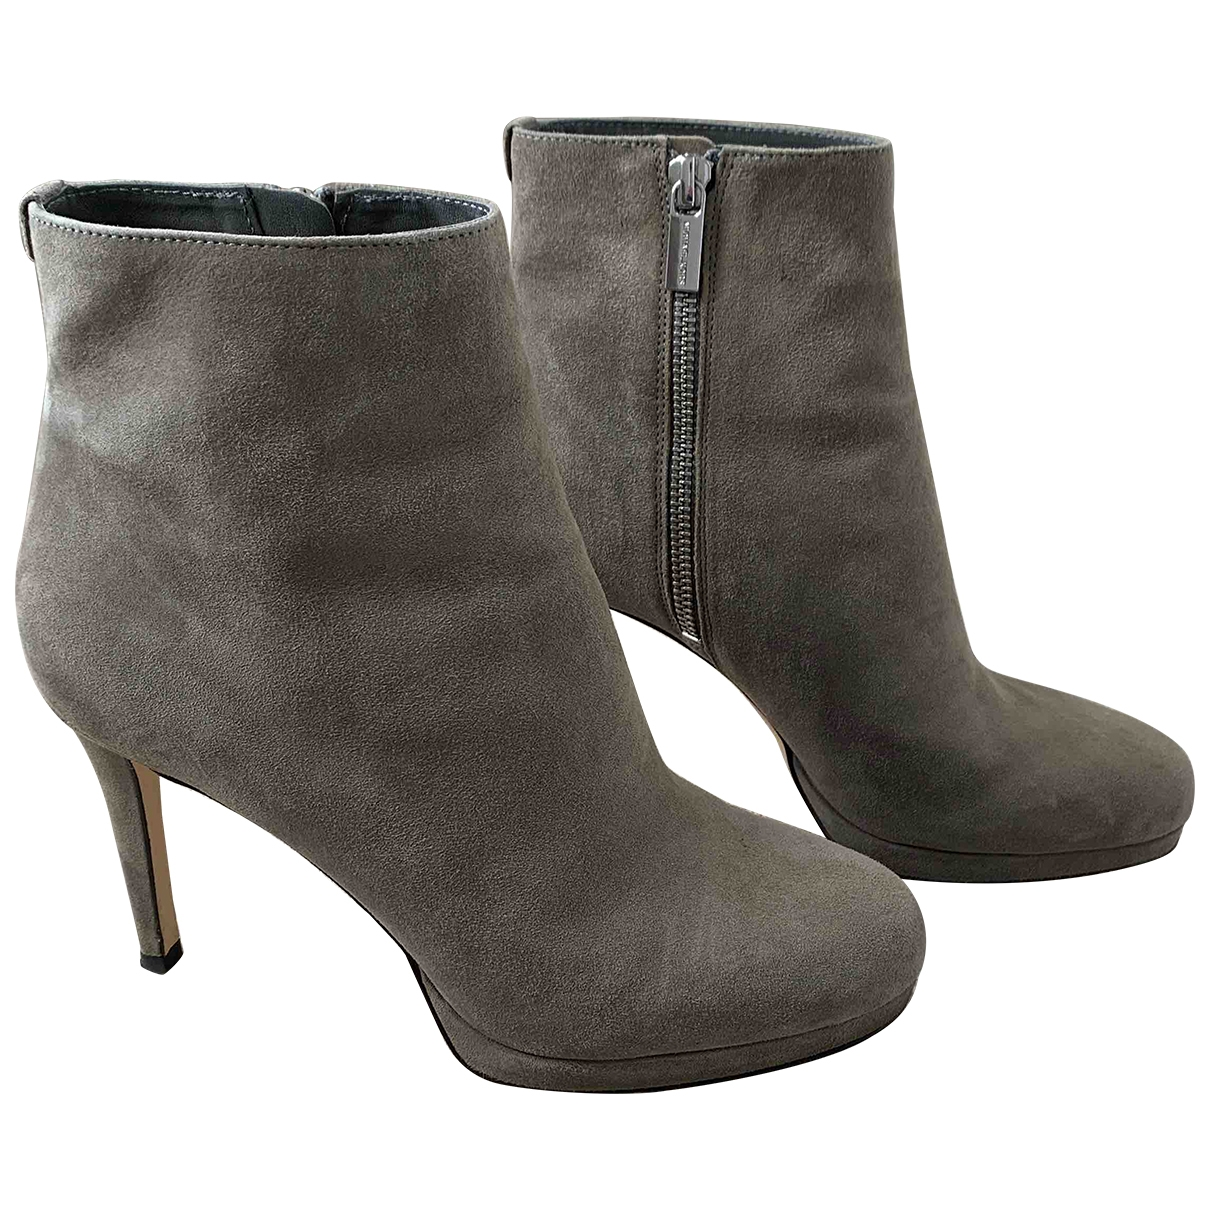 Michael Kors \N Grey Suede Ankle boots for Women 7.5 US